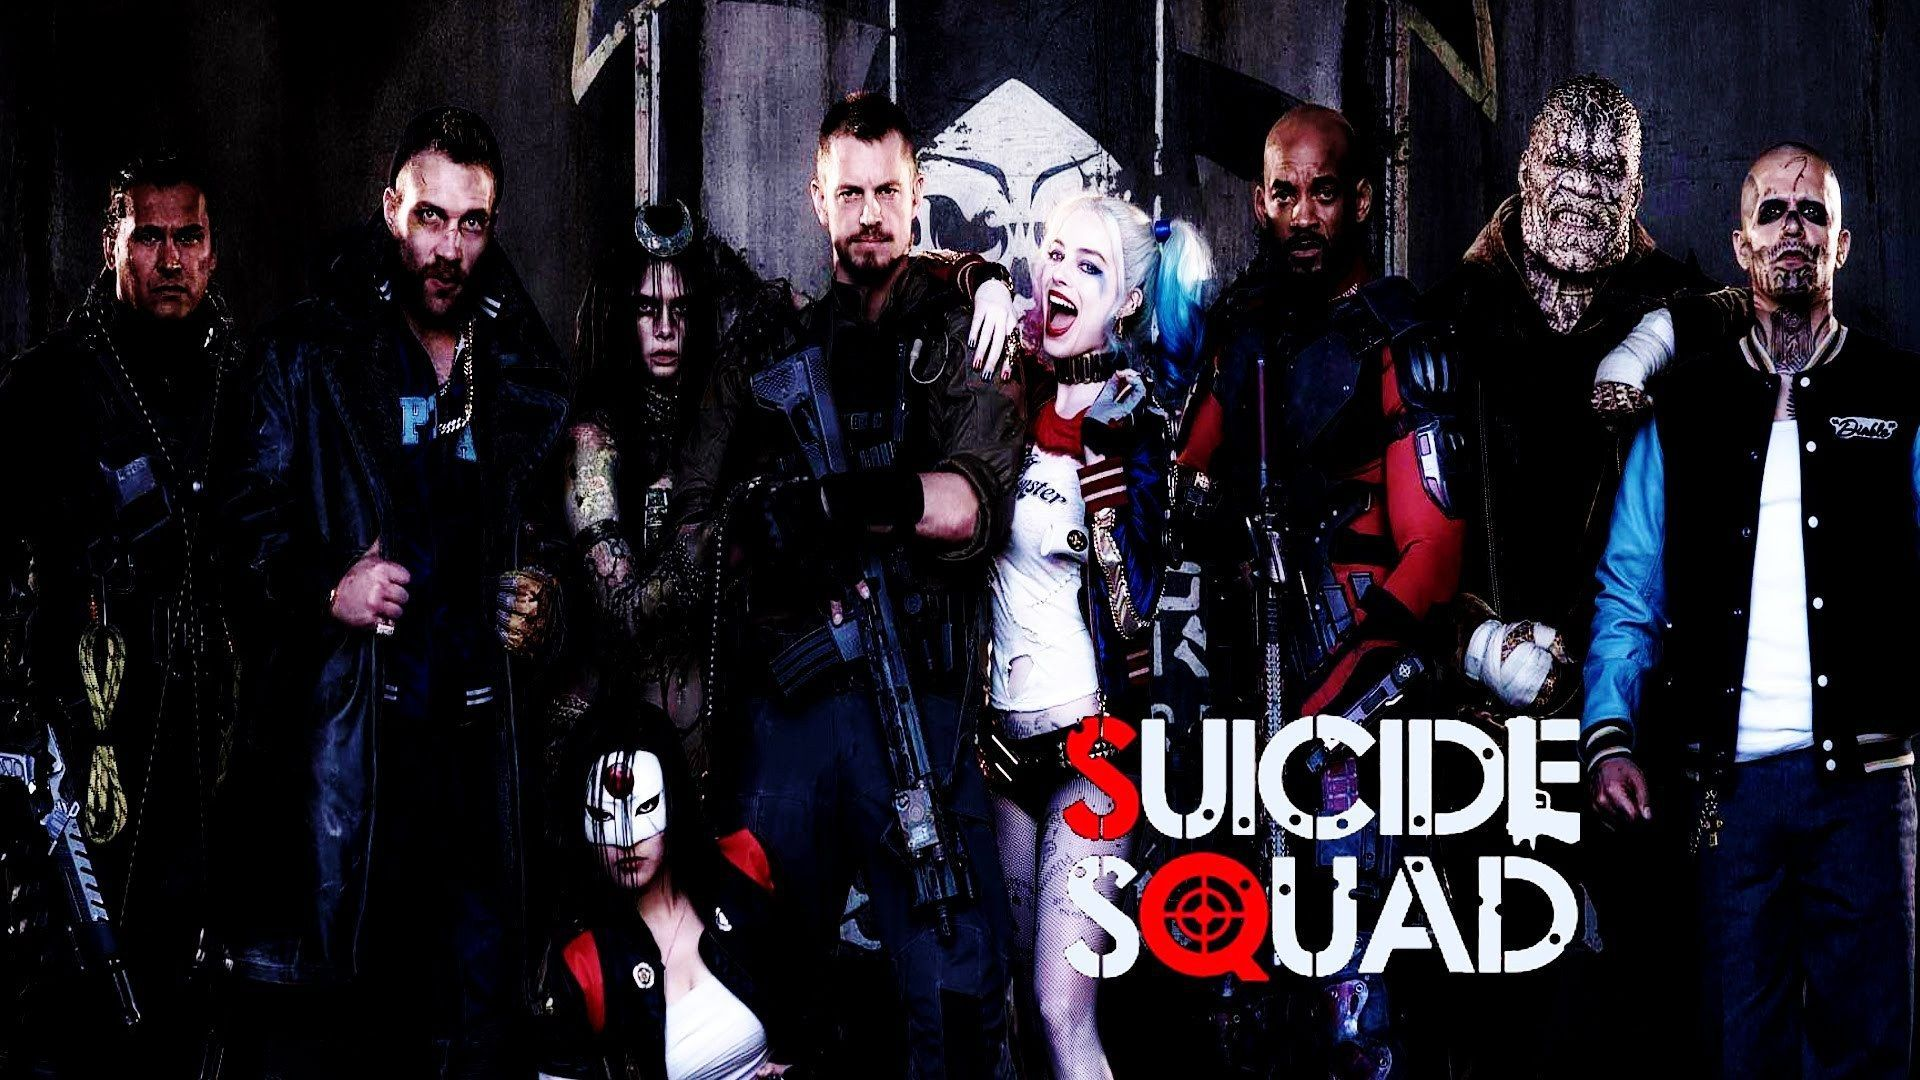 Suicide Squad 2016 HD Wallpapers